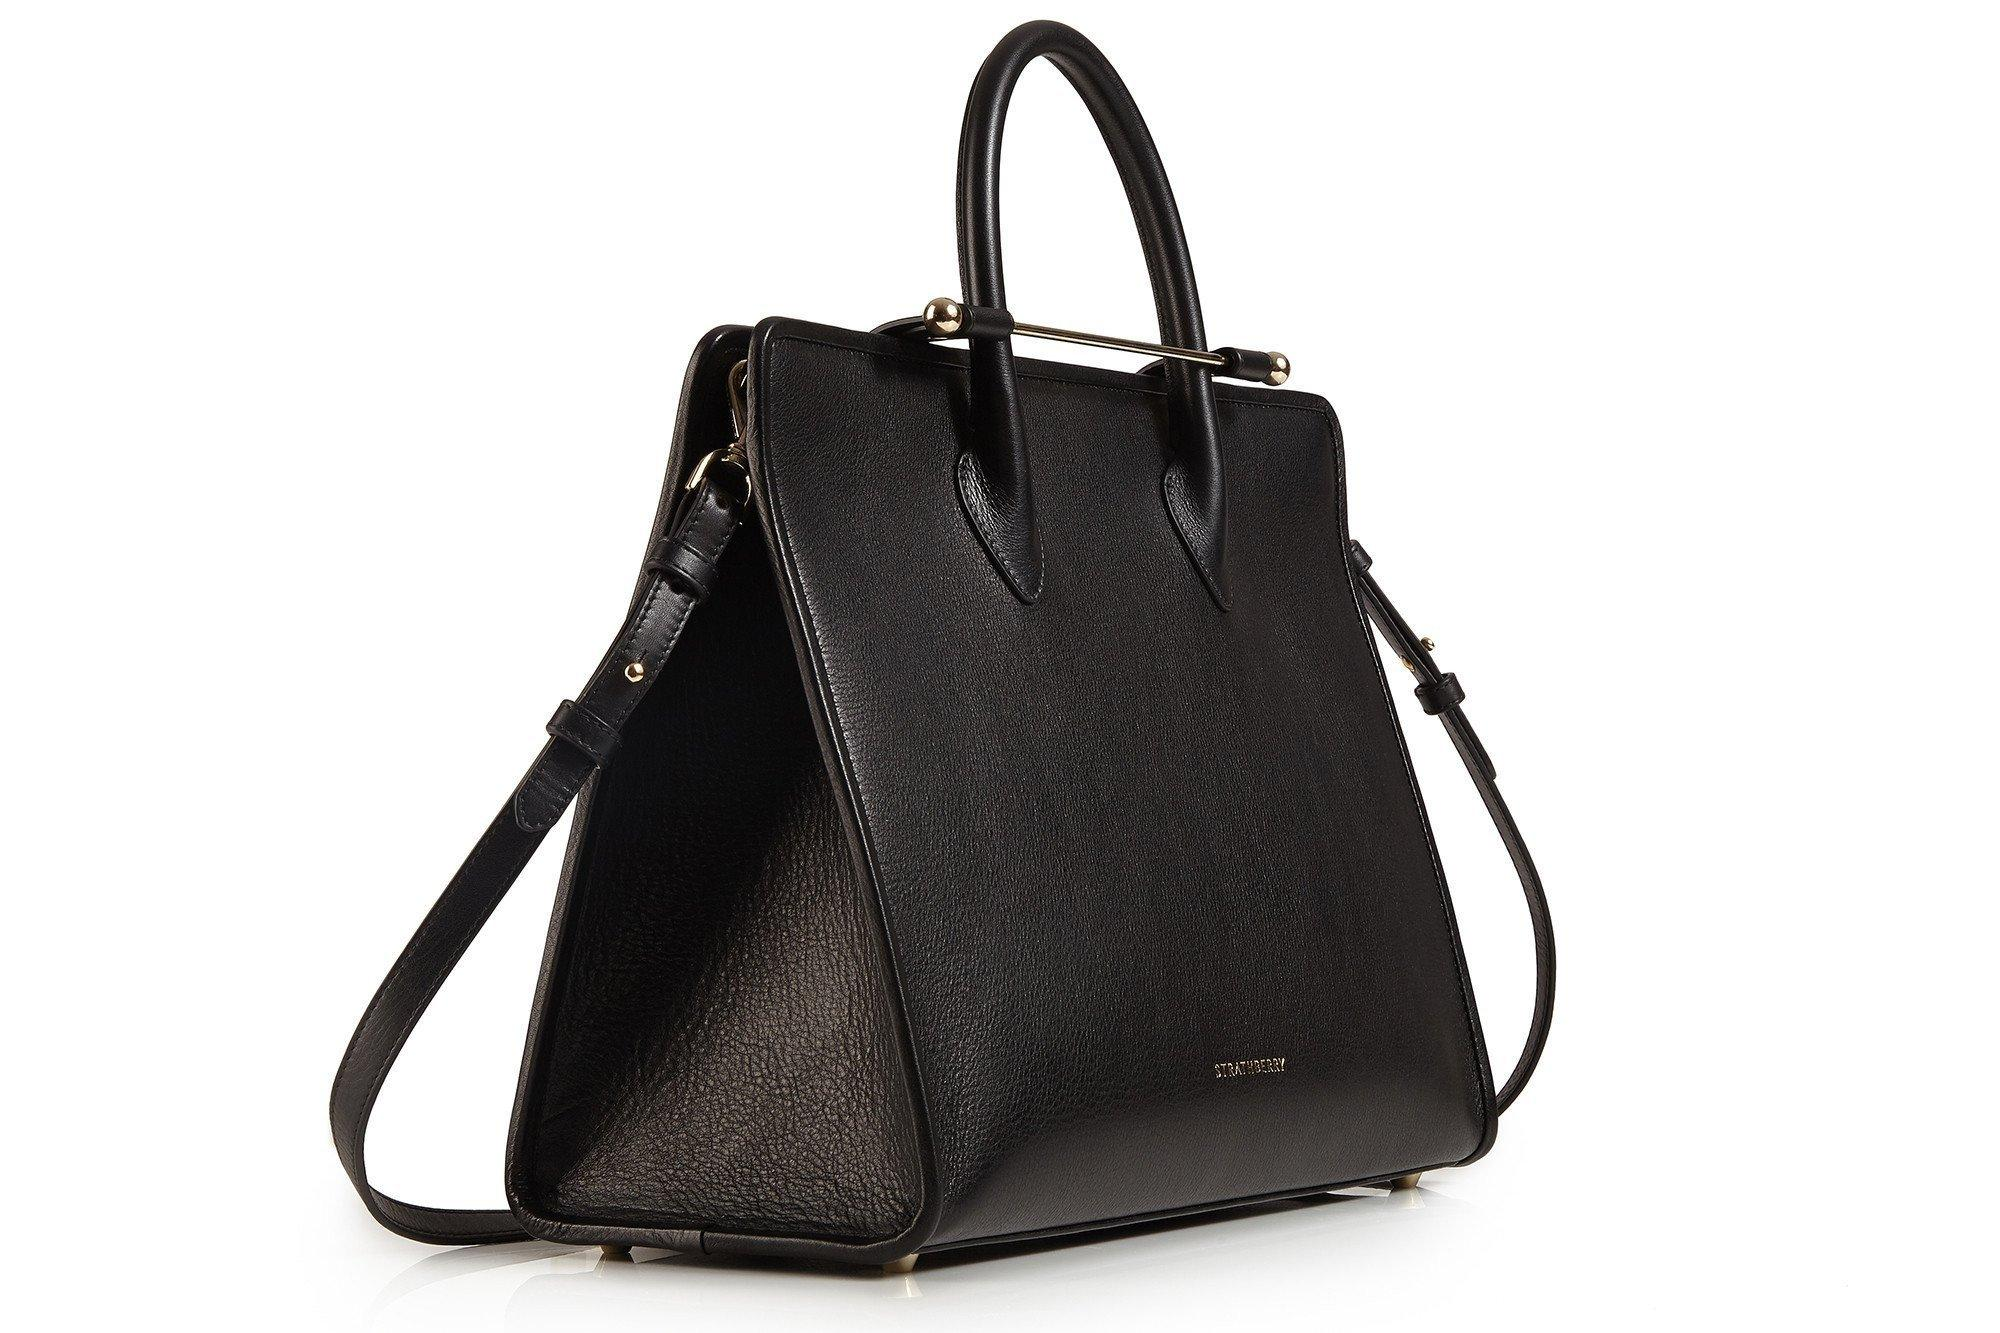 Strathberry Of Scotland The Strathberry Tote - Black